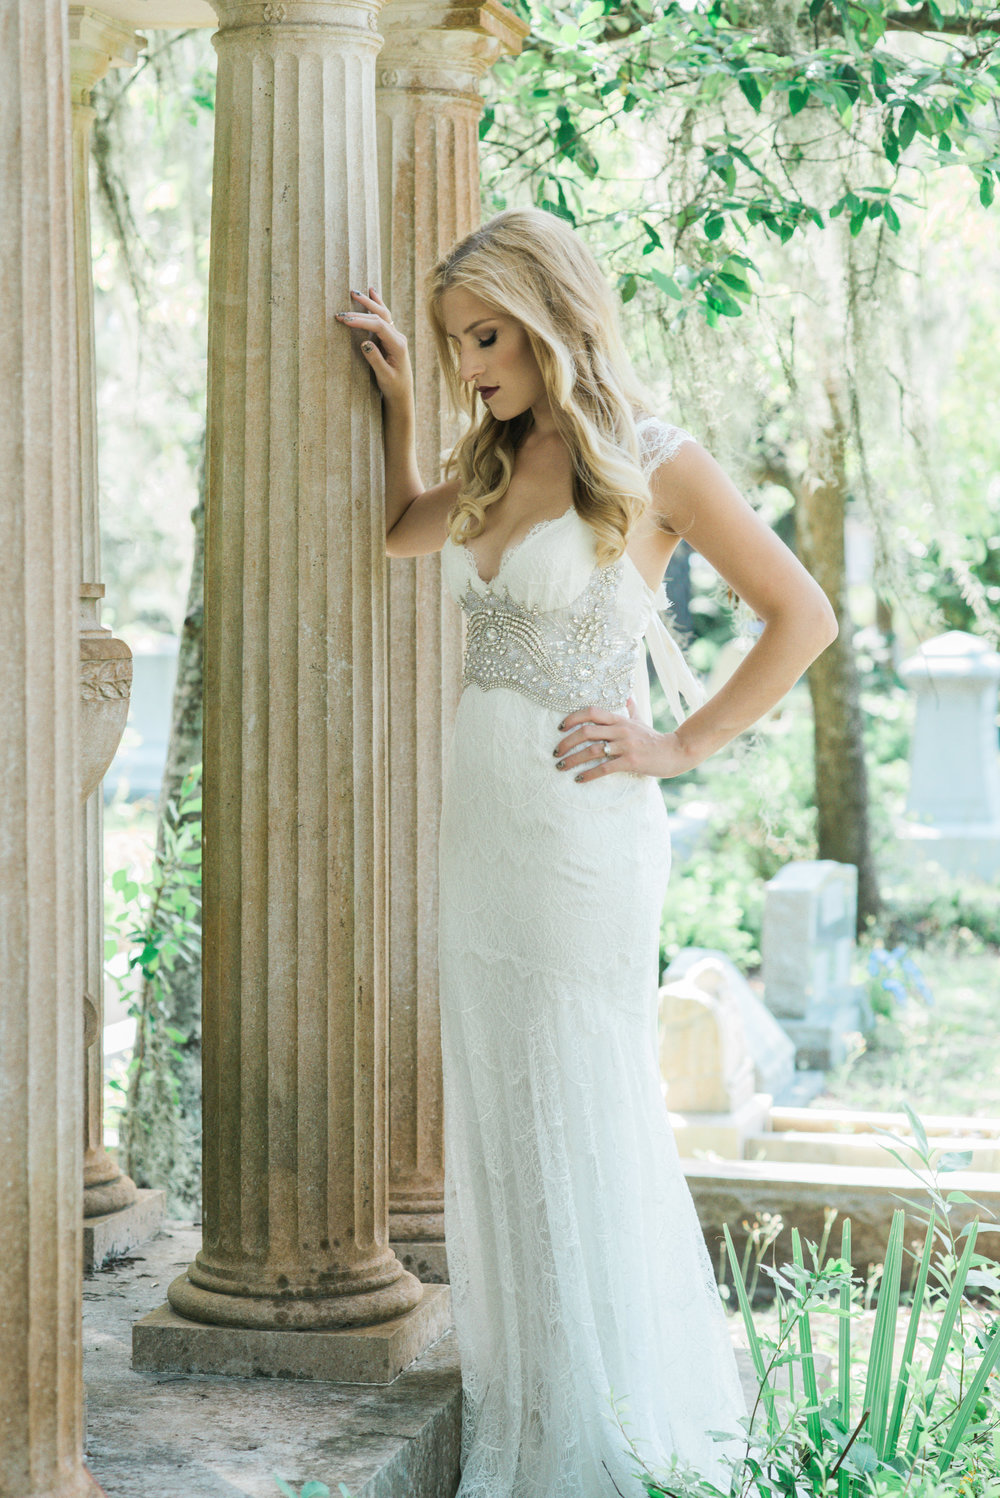 callie-beale-photography-Bonaventure-cemetery-michelle-royal-makeup-cemetery-wedding-ivory-and-beau-wedding-planning-anna-campbell-harper-savannah-bridal-boutique-savannah-wedding-dresses-savannah-weddings-1.jpg